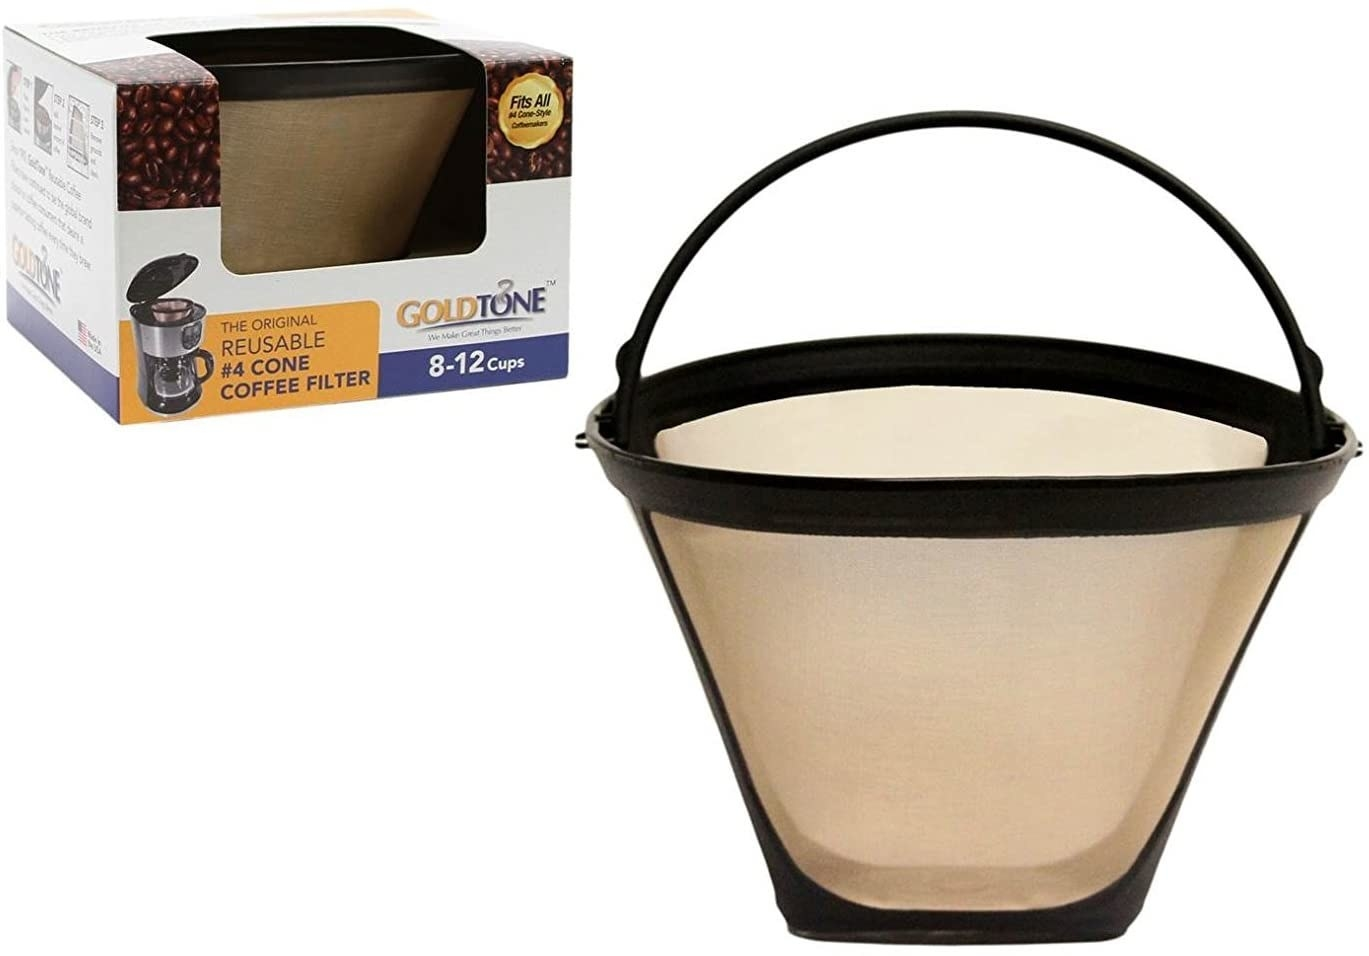 A bucket-shaped coffee filter